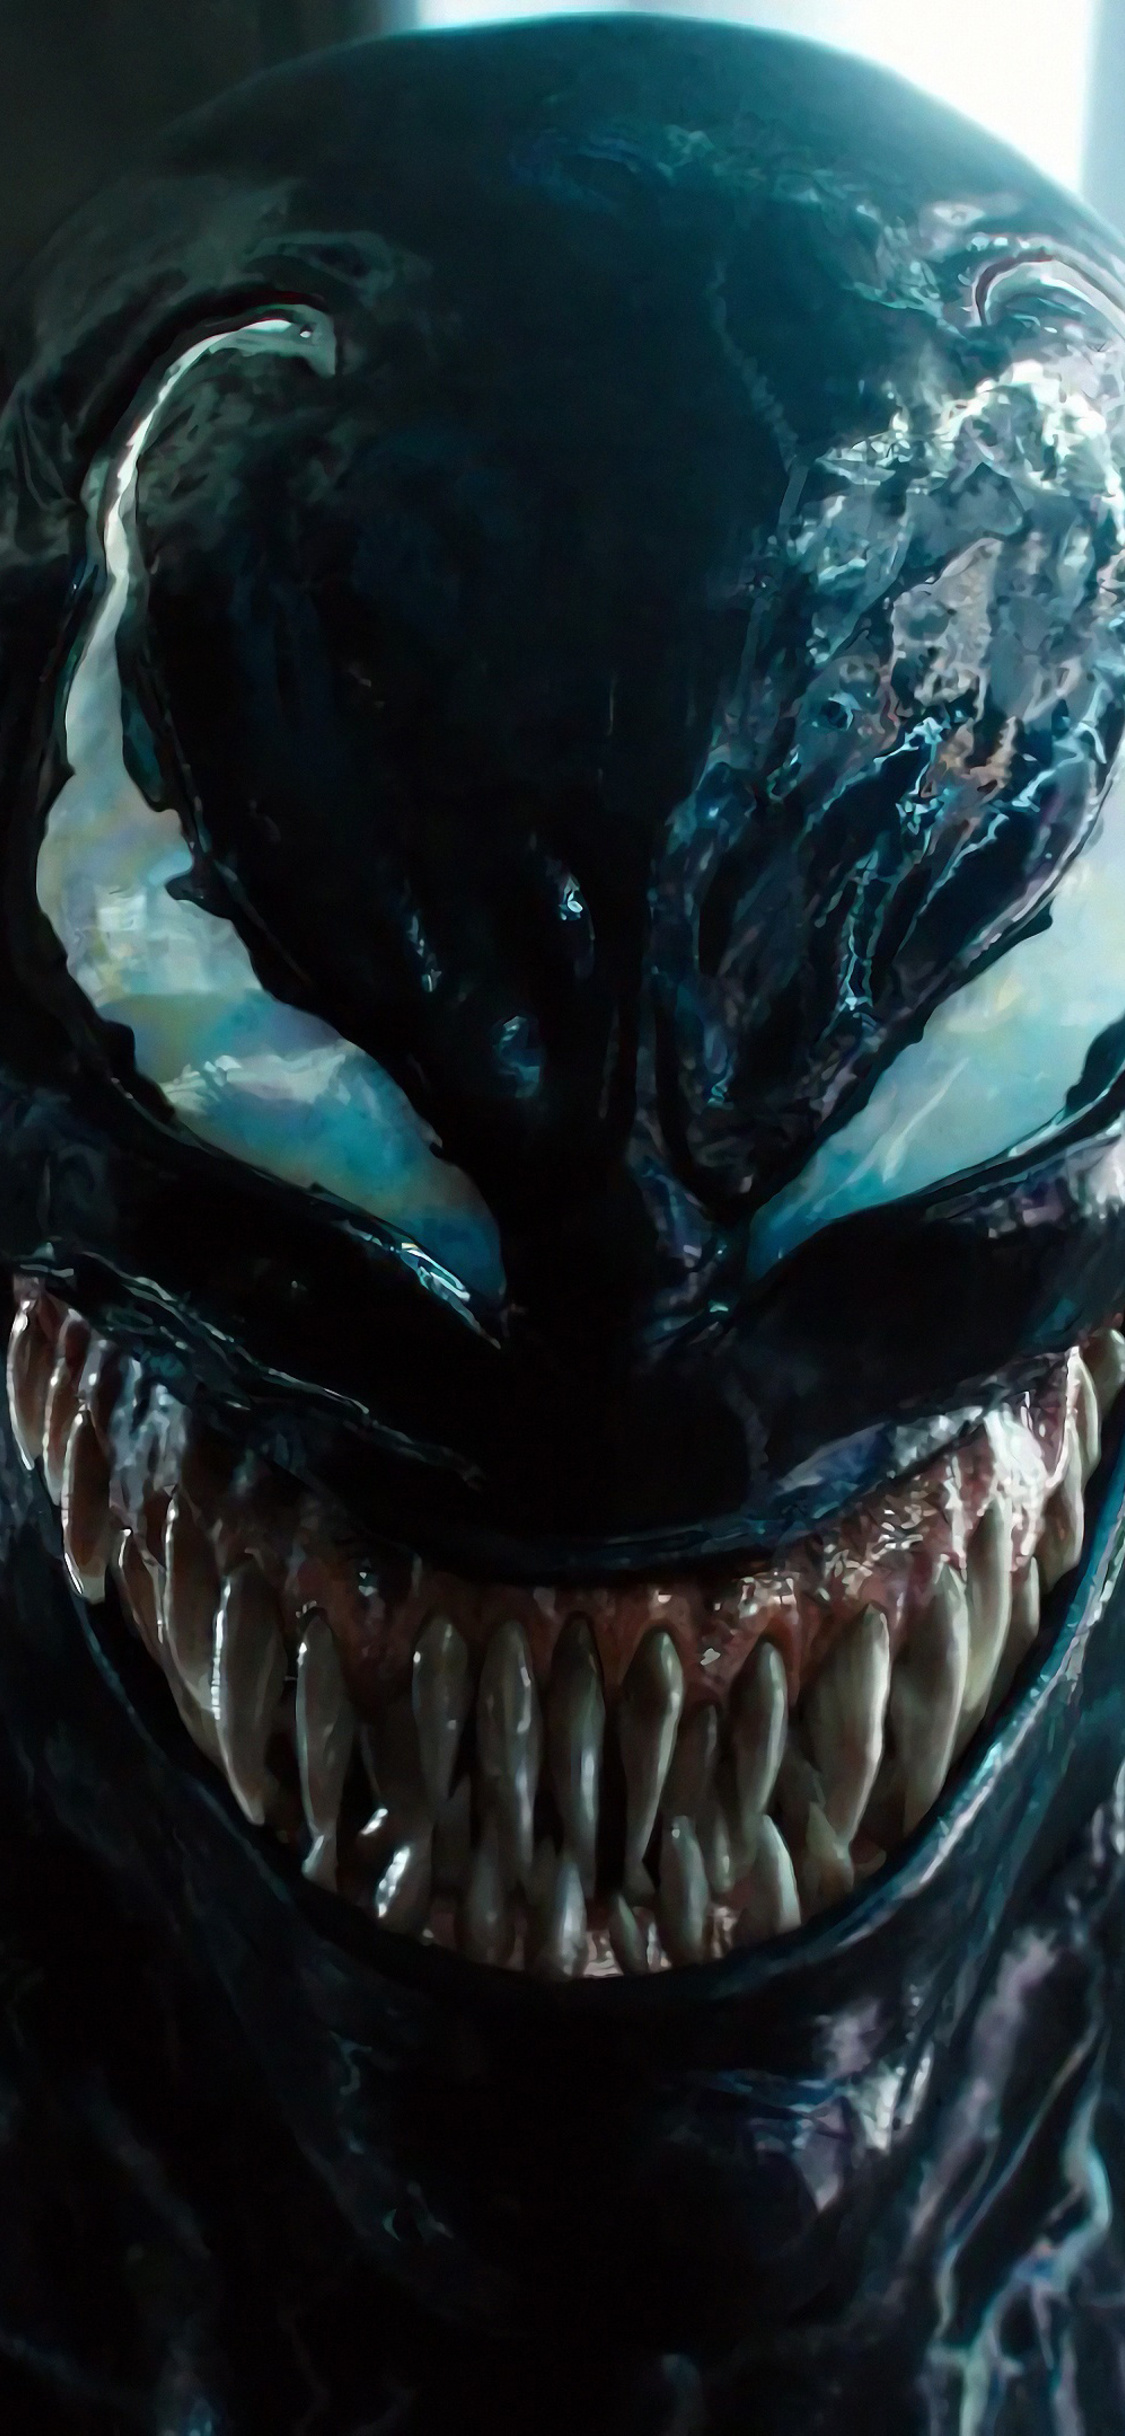 1125x2436 Venom 2018 Movie 4k Iphone Xs Iphone 10 Iphone X Hd 4k Wallpapers Images Backgrounds Photos And Pictures